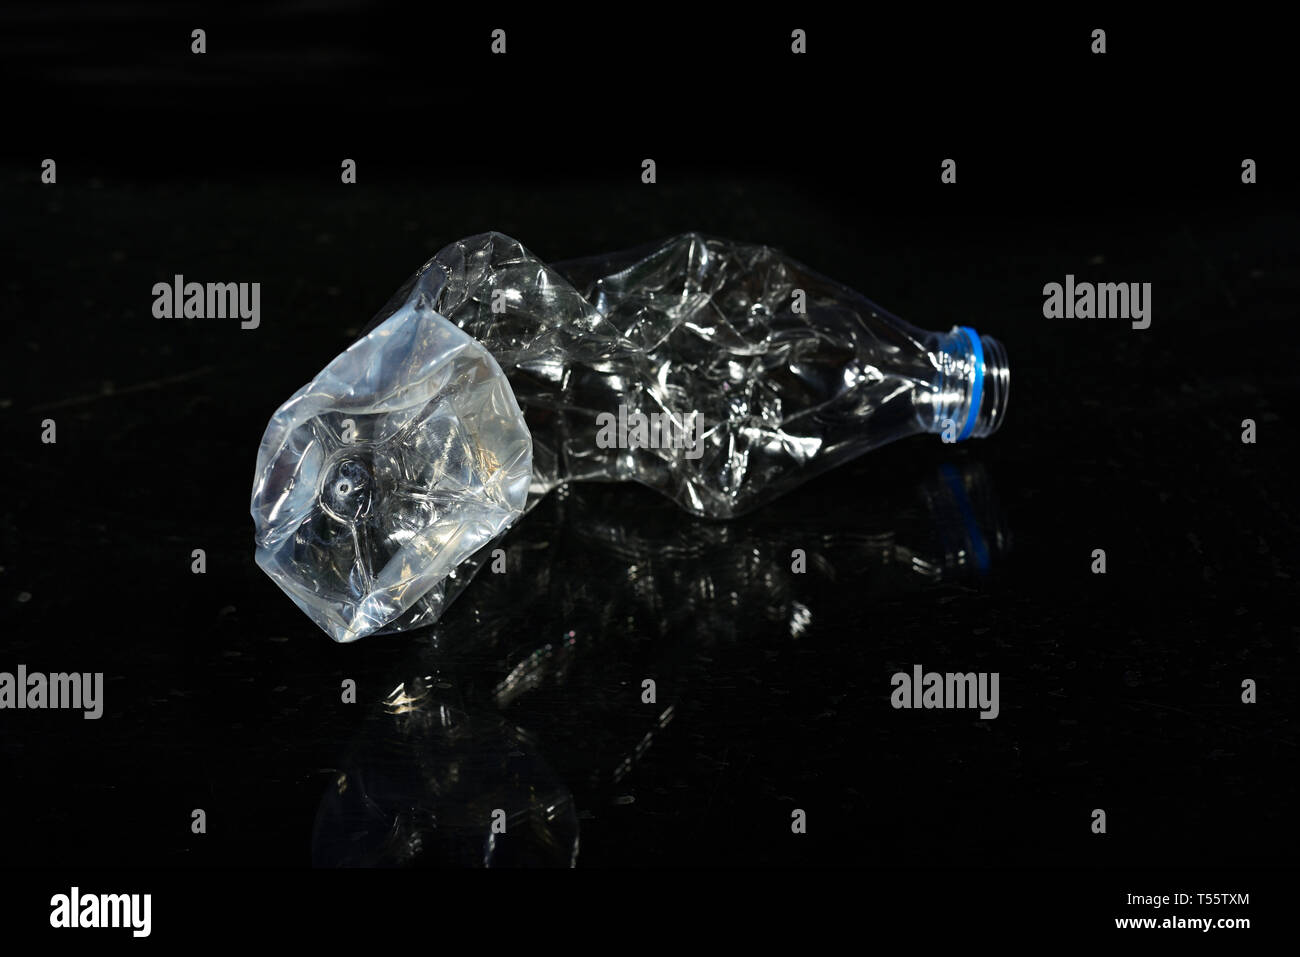 Discarded plastic water bottle are isolated on black background - Stock Image